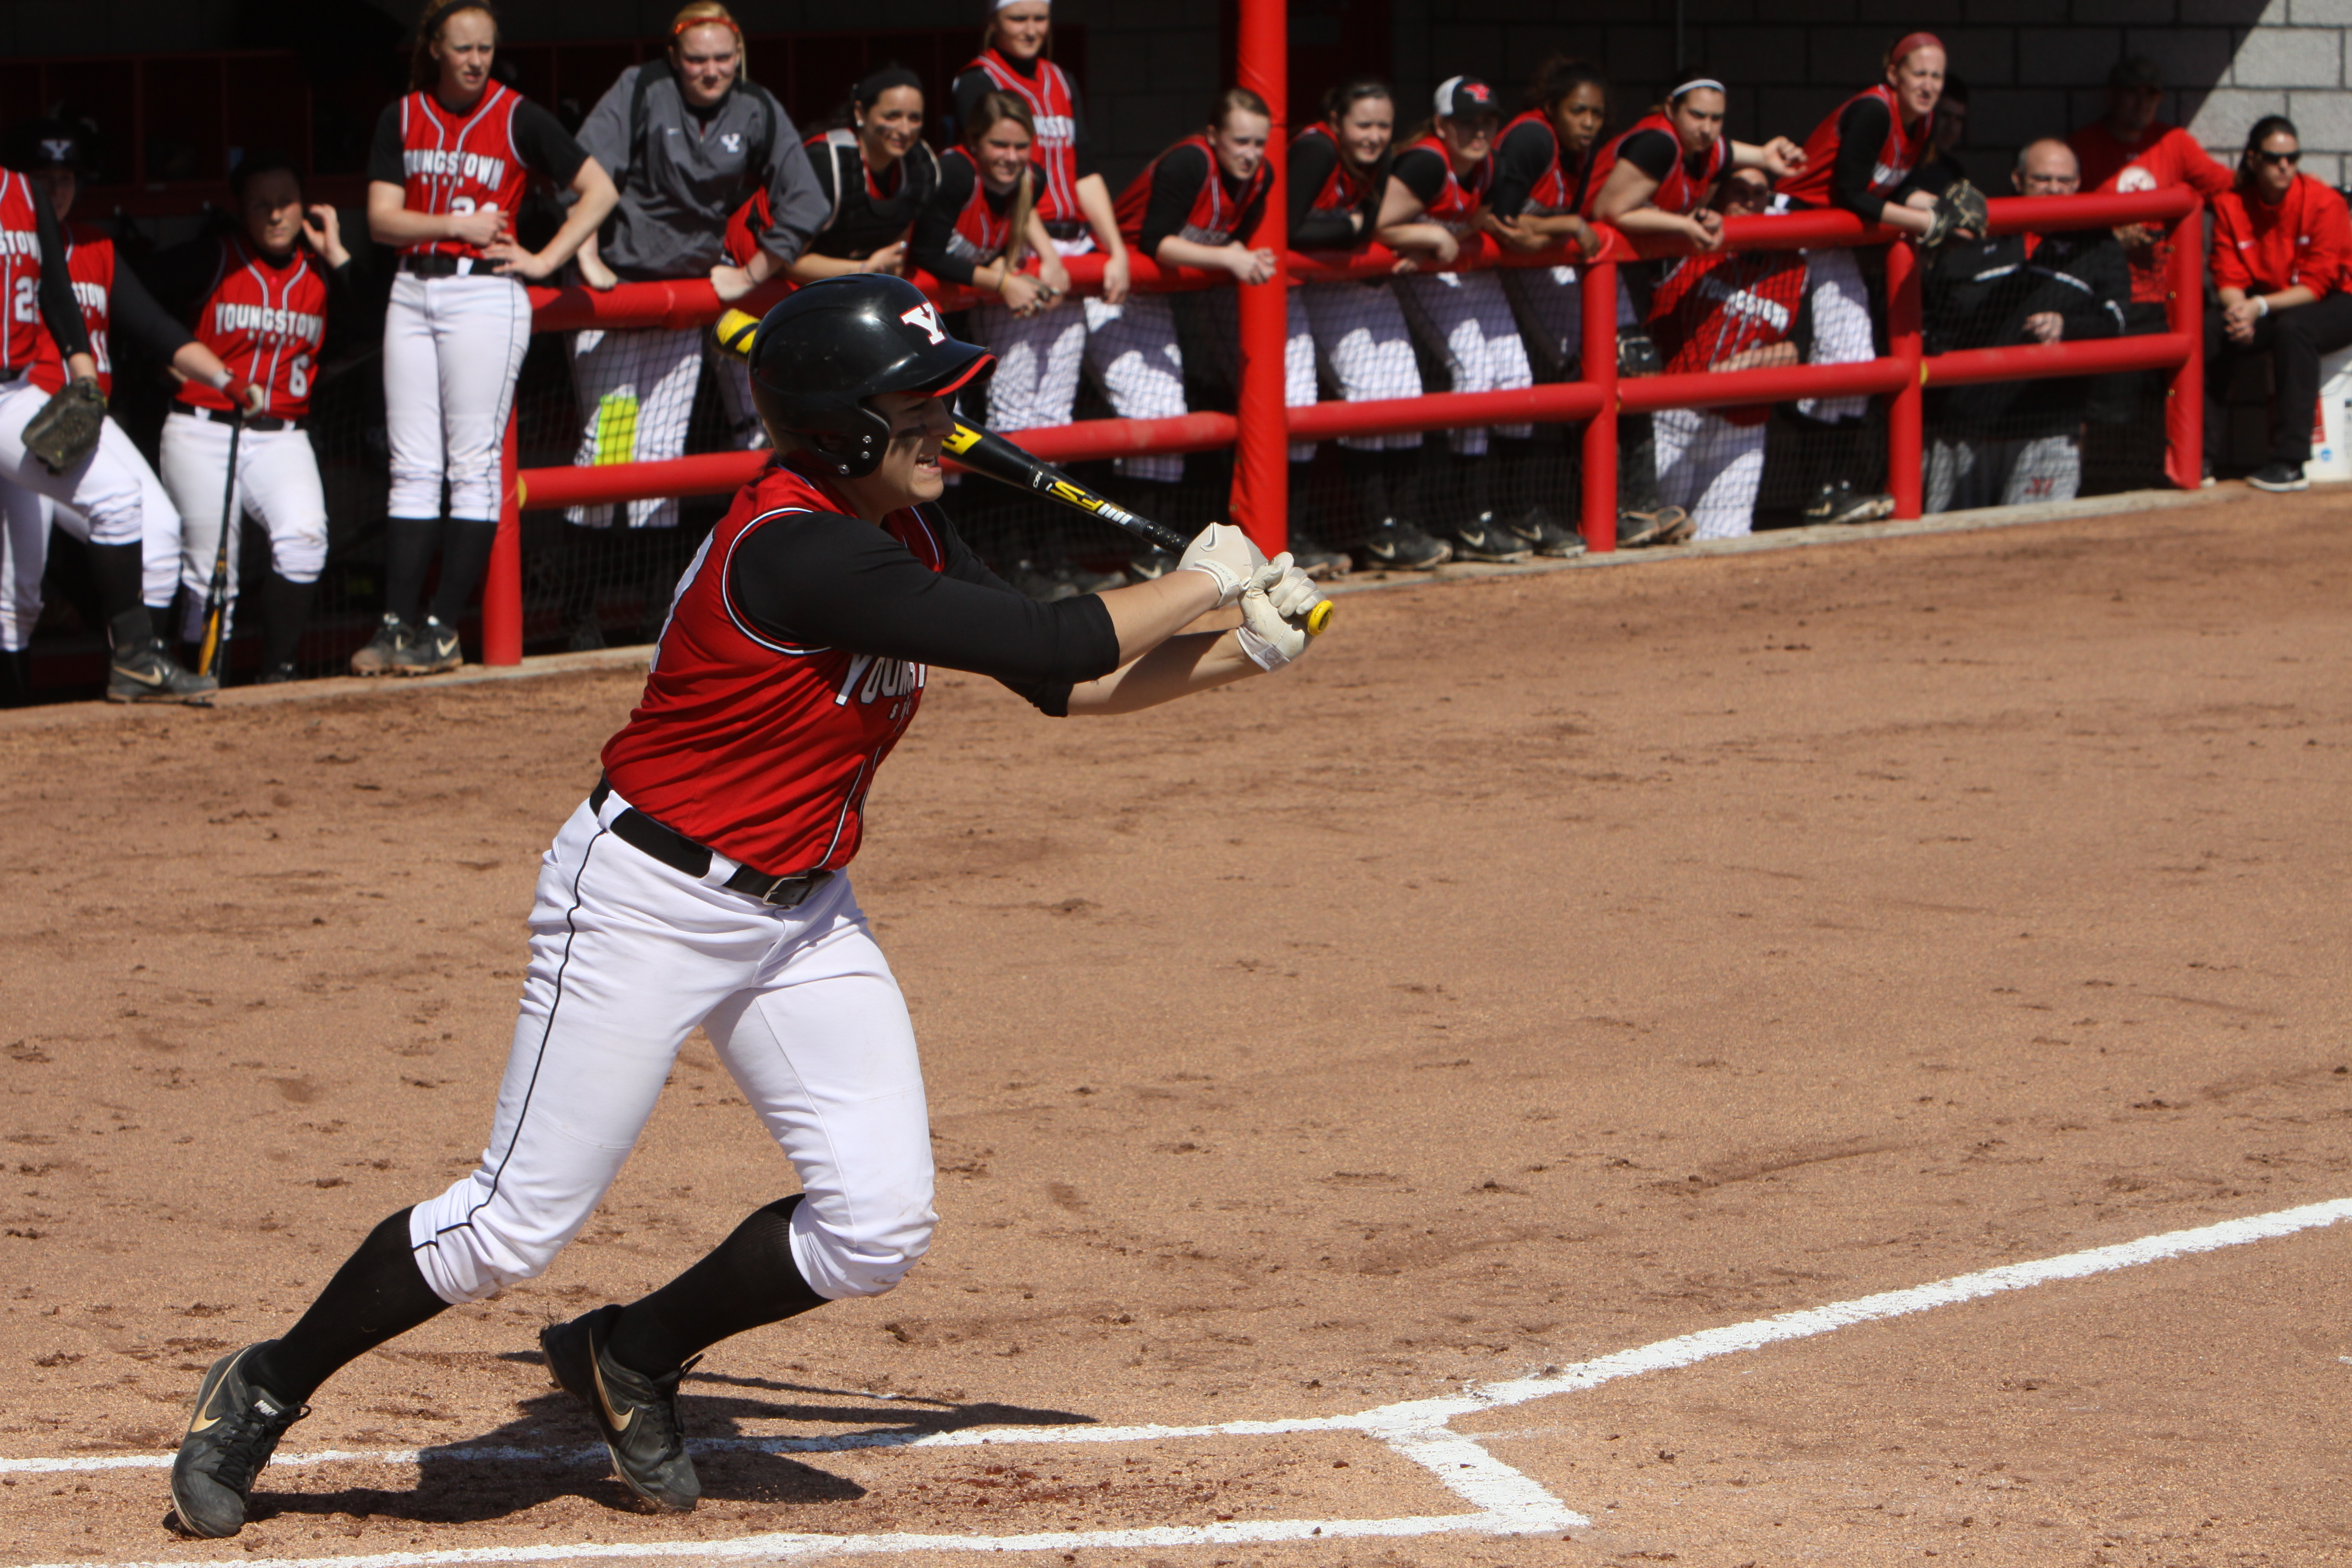 Junior infielder Miranda Castiglione was named the Horizon League Player of the Year last season. Castiglione led the softball team with a .395 batting average. Her average was sixth in YSU's single season list. Photo courtesy of YSU Sports Information.